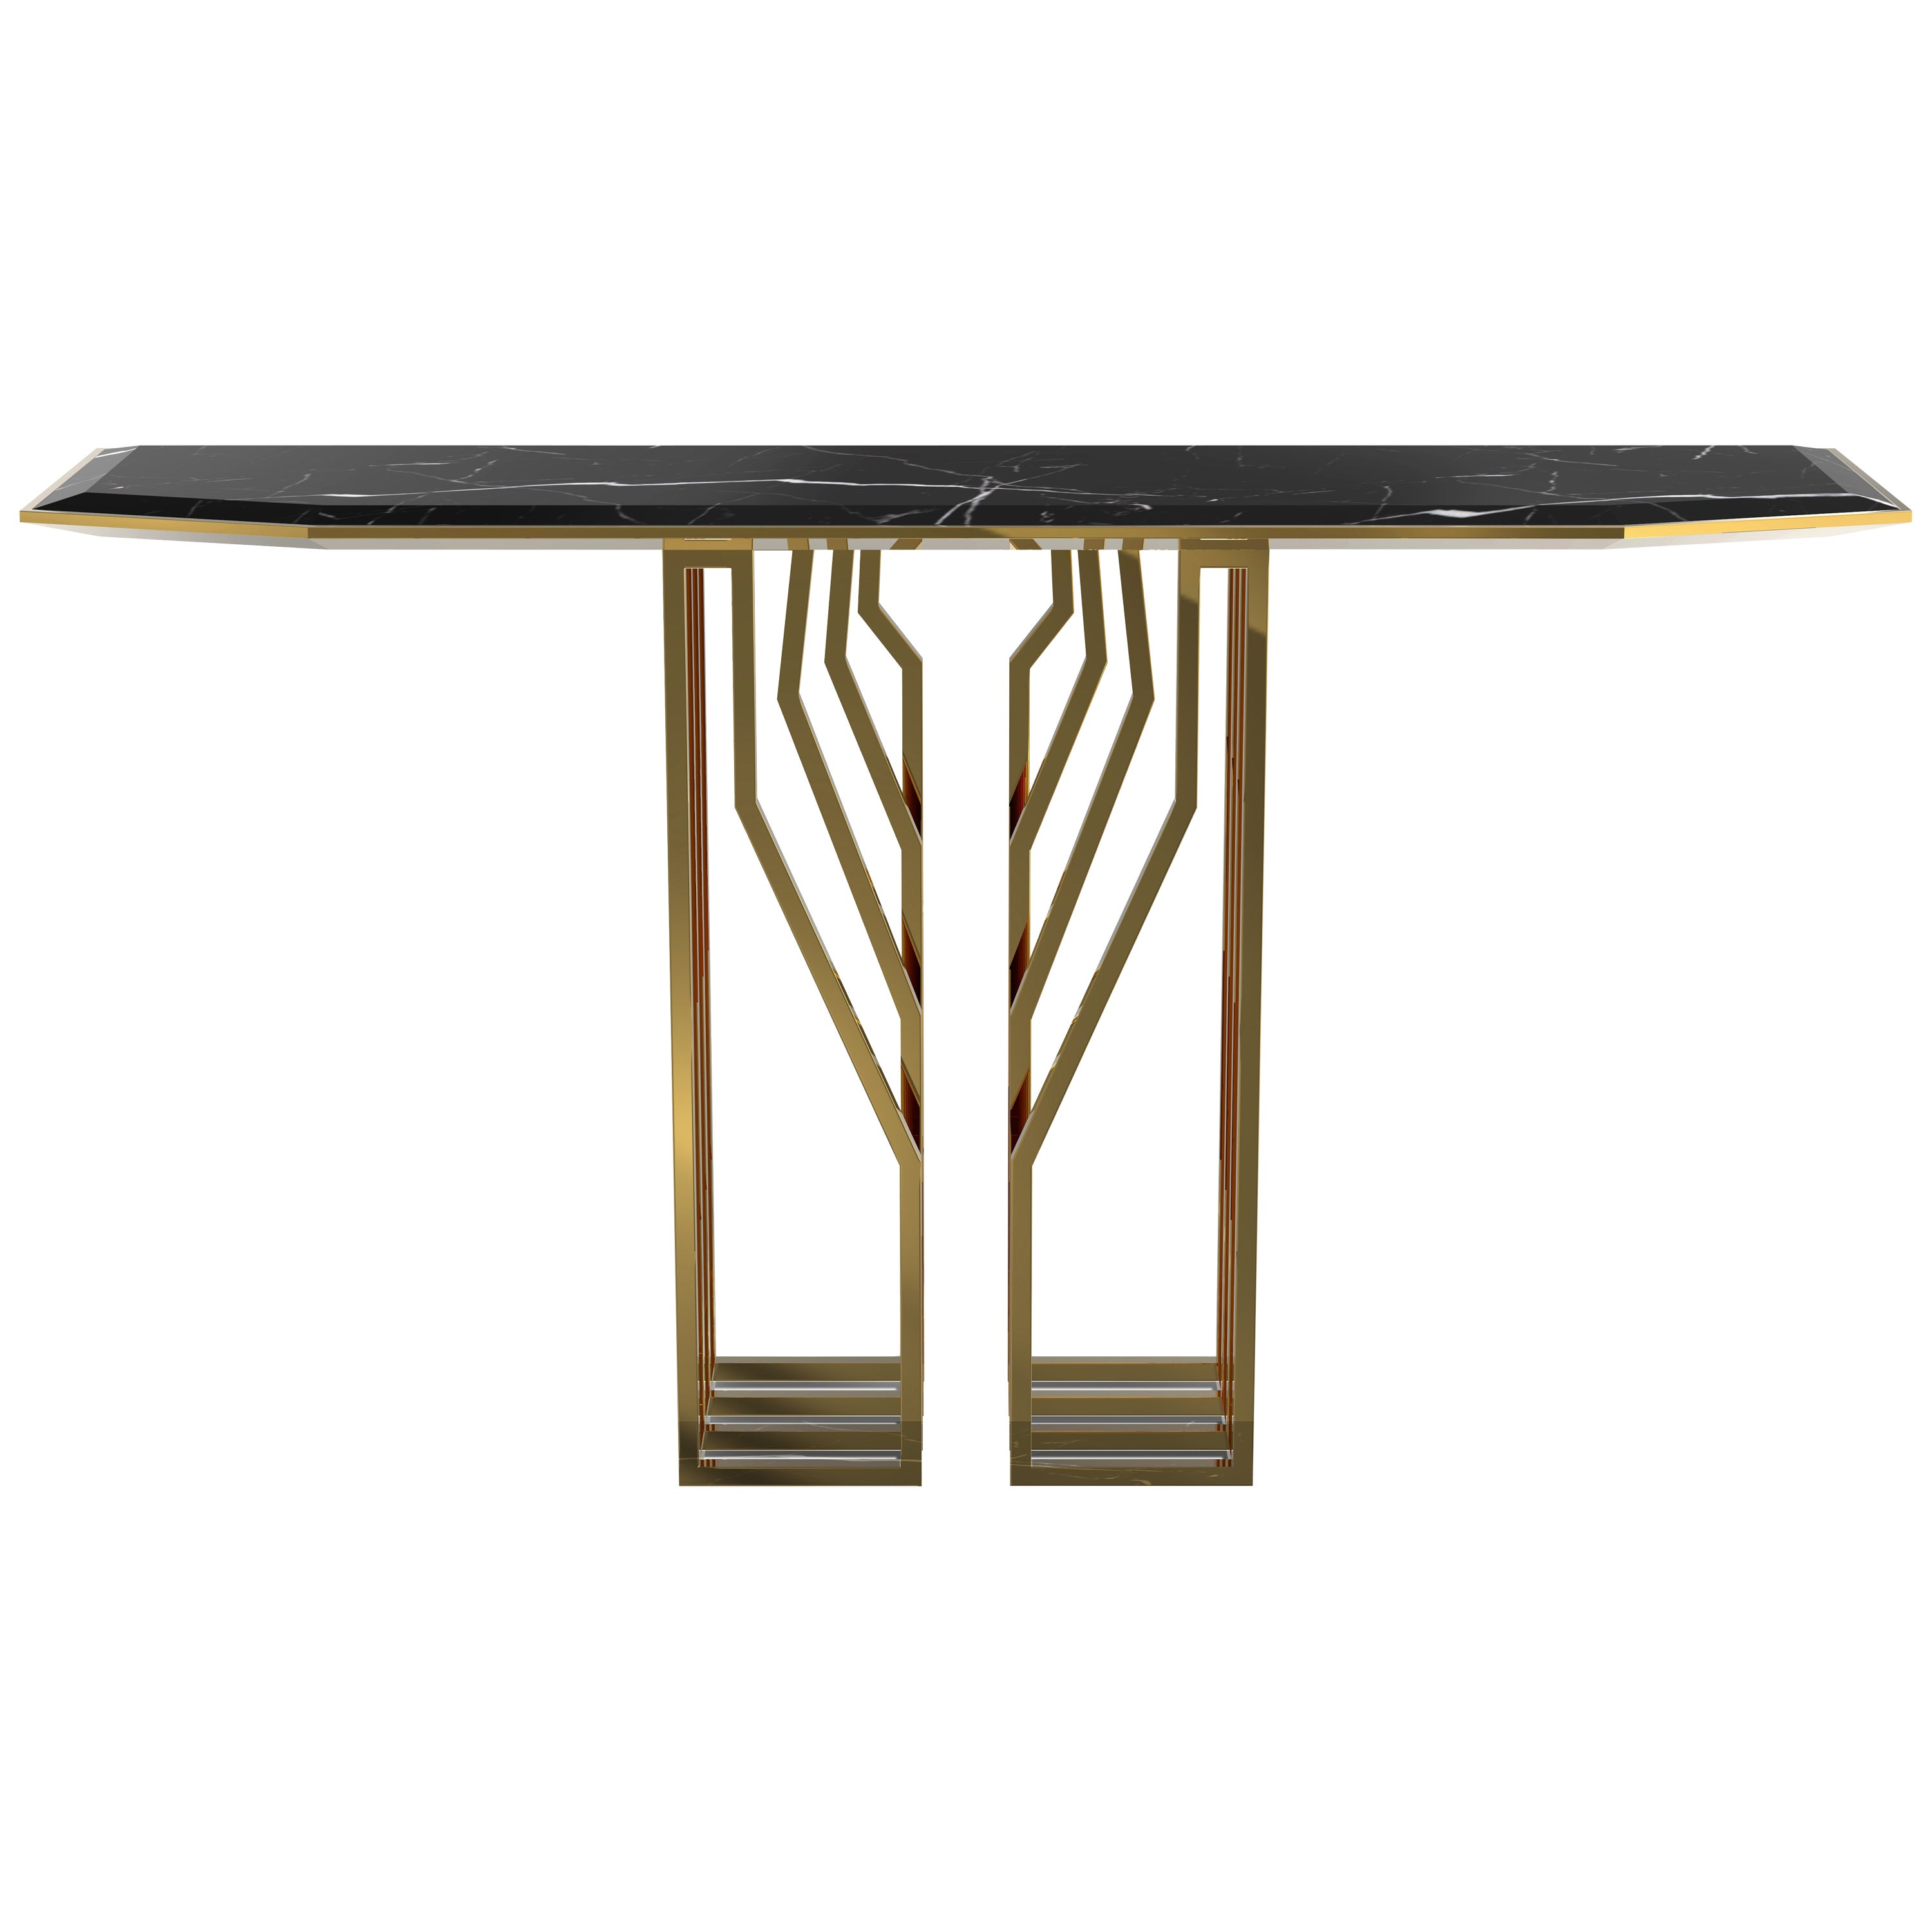 Scarp Console Table with Nero Marquina Marble Top and Brass Legs